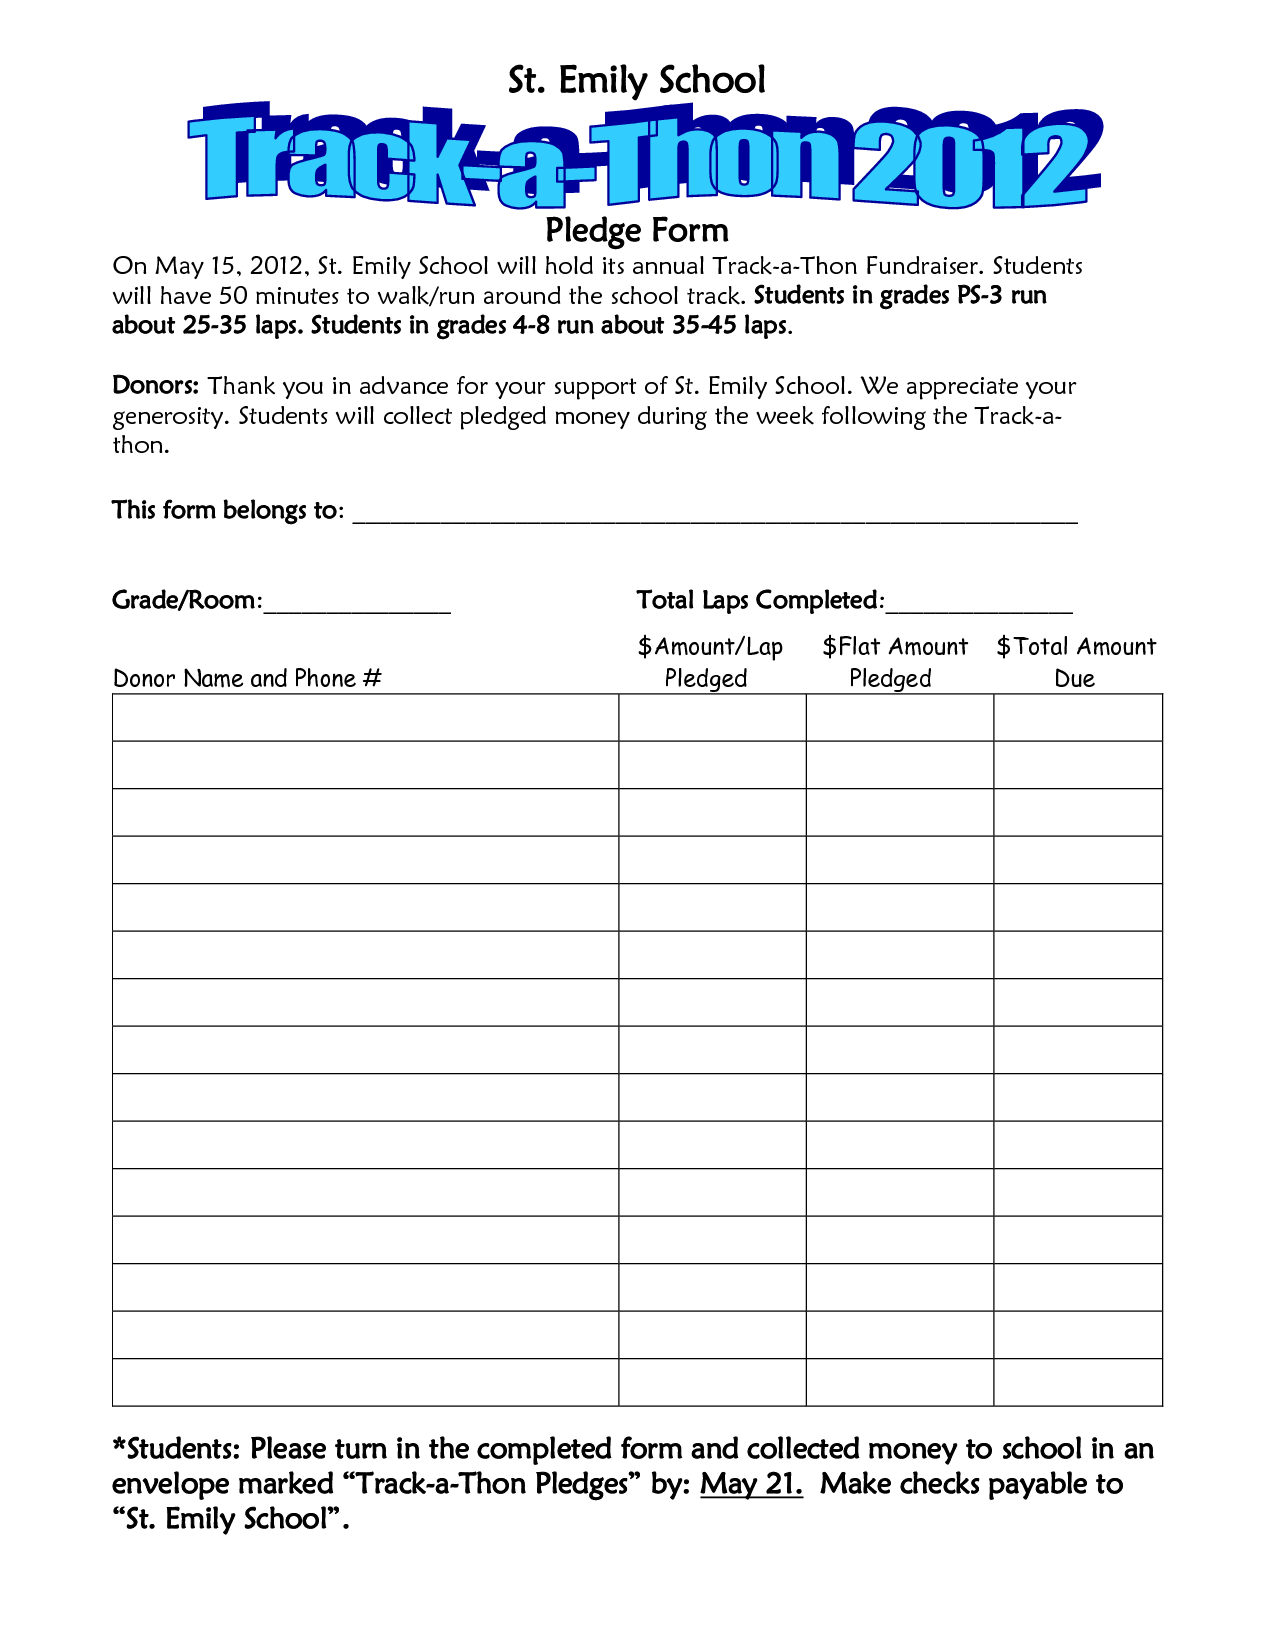 Fundraiser Invitation Templates Walkathon Pledge Form Template  Invitation Templates Designsearch .